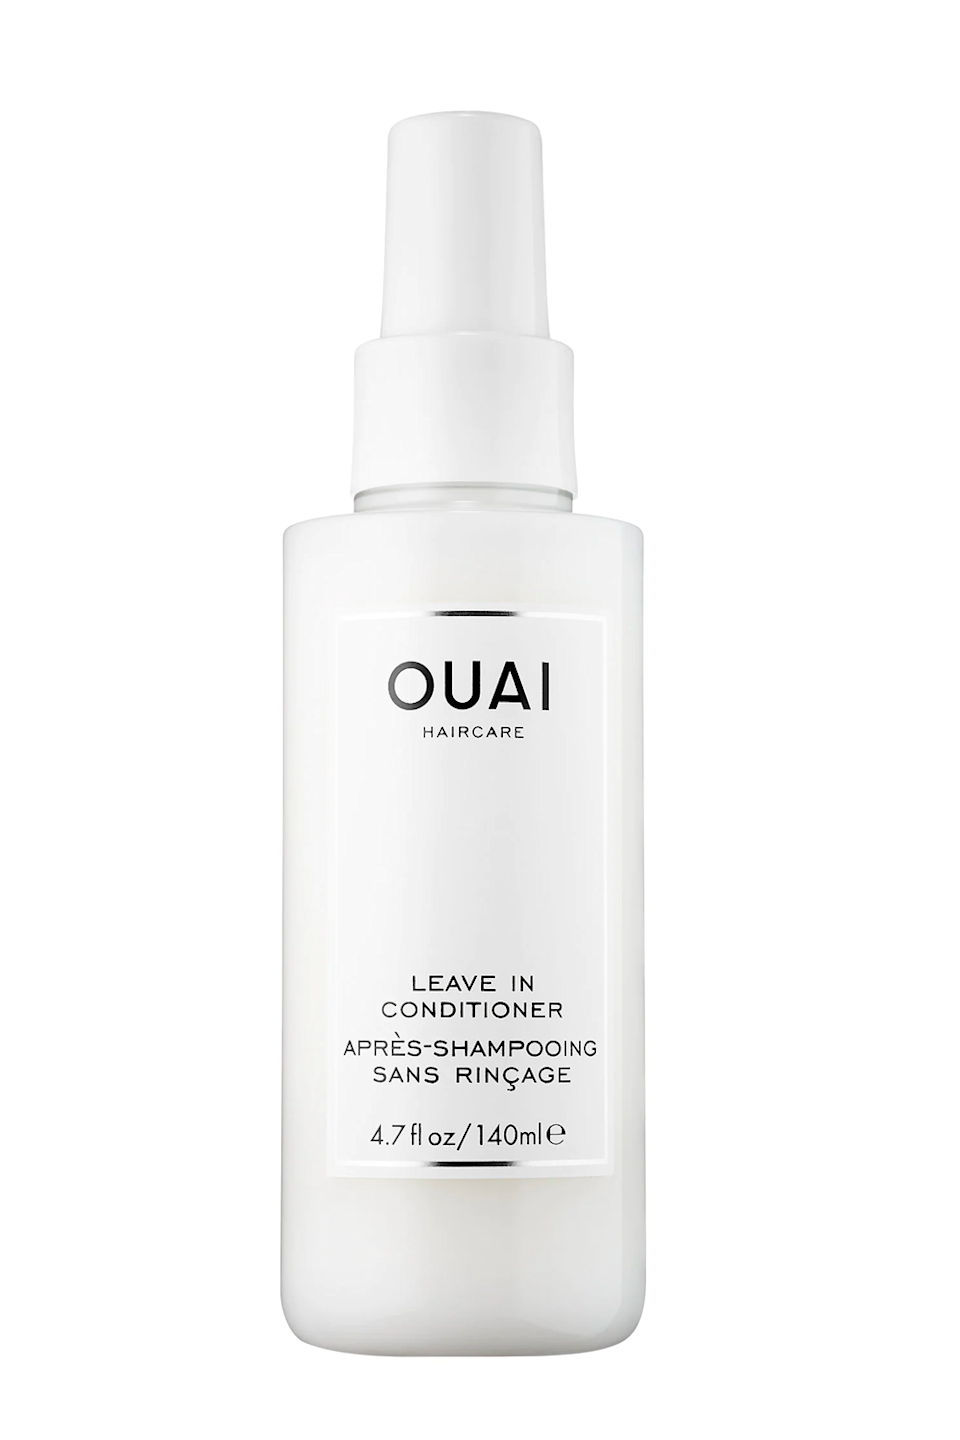 """<p><strong>OUAI</strong></p><p>sephora.com</p><p><strong>$26.00</strong></p><p><a href=""""https://go.redirectingat.com?id=74968X1596630&url=https%3A%2F%2Fwww.sephora.com%2Fproduct%2Fleave-in-conditioner-P428222&sref=https%3A%2F%2Fwww.cosmopolitan.com%2Fstyle-beauty%2Fbeauty%2Fg36027428%2Fbest-detanglers-for-curly-hair%2F"""" rel=""""nofollow noopener"""" target=""""_blank"""" data-ylk=""""slk:Shop Now"""" class=""""link rapid-noclick-resp"""">Shop Now</a></p><p>Excellent for detangling knots and smoothing <a href=""""https://www.cosmopolitan.com/style-beauty/beauty/a33187/how-to-defrizz-your-hair/"""" rel=""""nofollow noopener"""" target=""""_blank"""" data-ylk=""""slk:unwanted frizz"""" class=""""link rapid-noclick-resp"""">unwanted frizz</a> and flyaways, this leave-in conditioner coats your curls with <strong>vitamin E (to hydrate) and hydrolyzed proteins (to strengthen)</strong>. And as an added bonus, it's also free of stripping sulfates, parabens, and other harsh ingredients.</p>"""